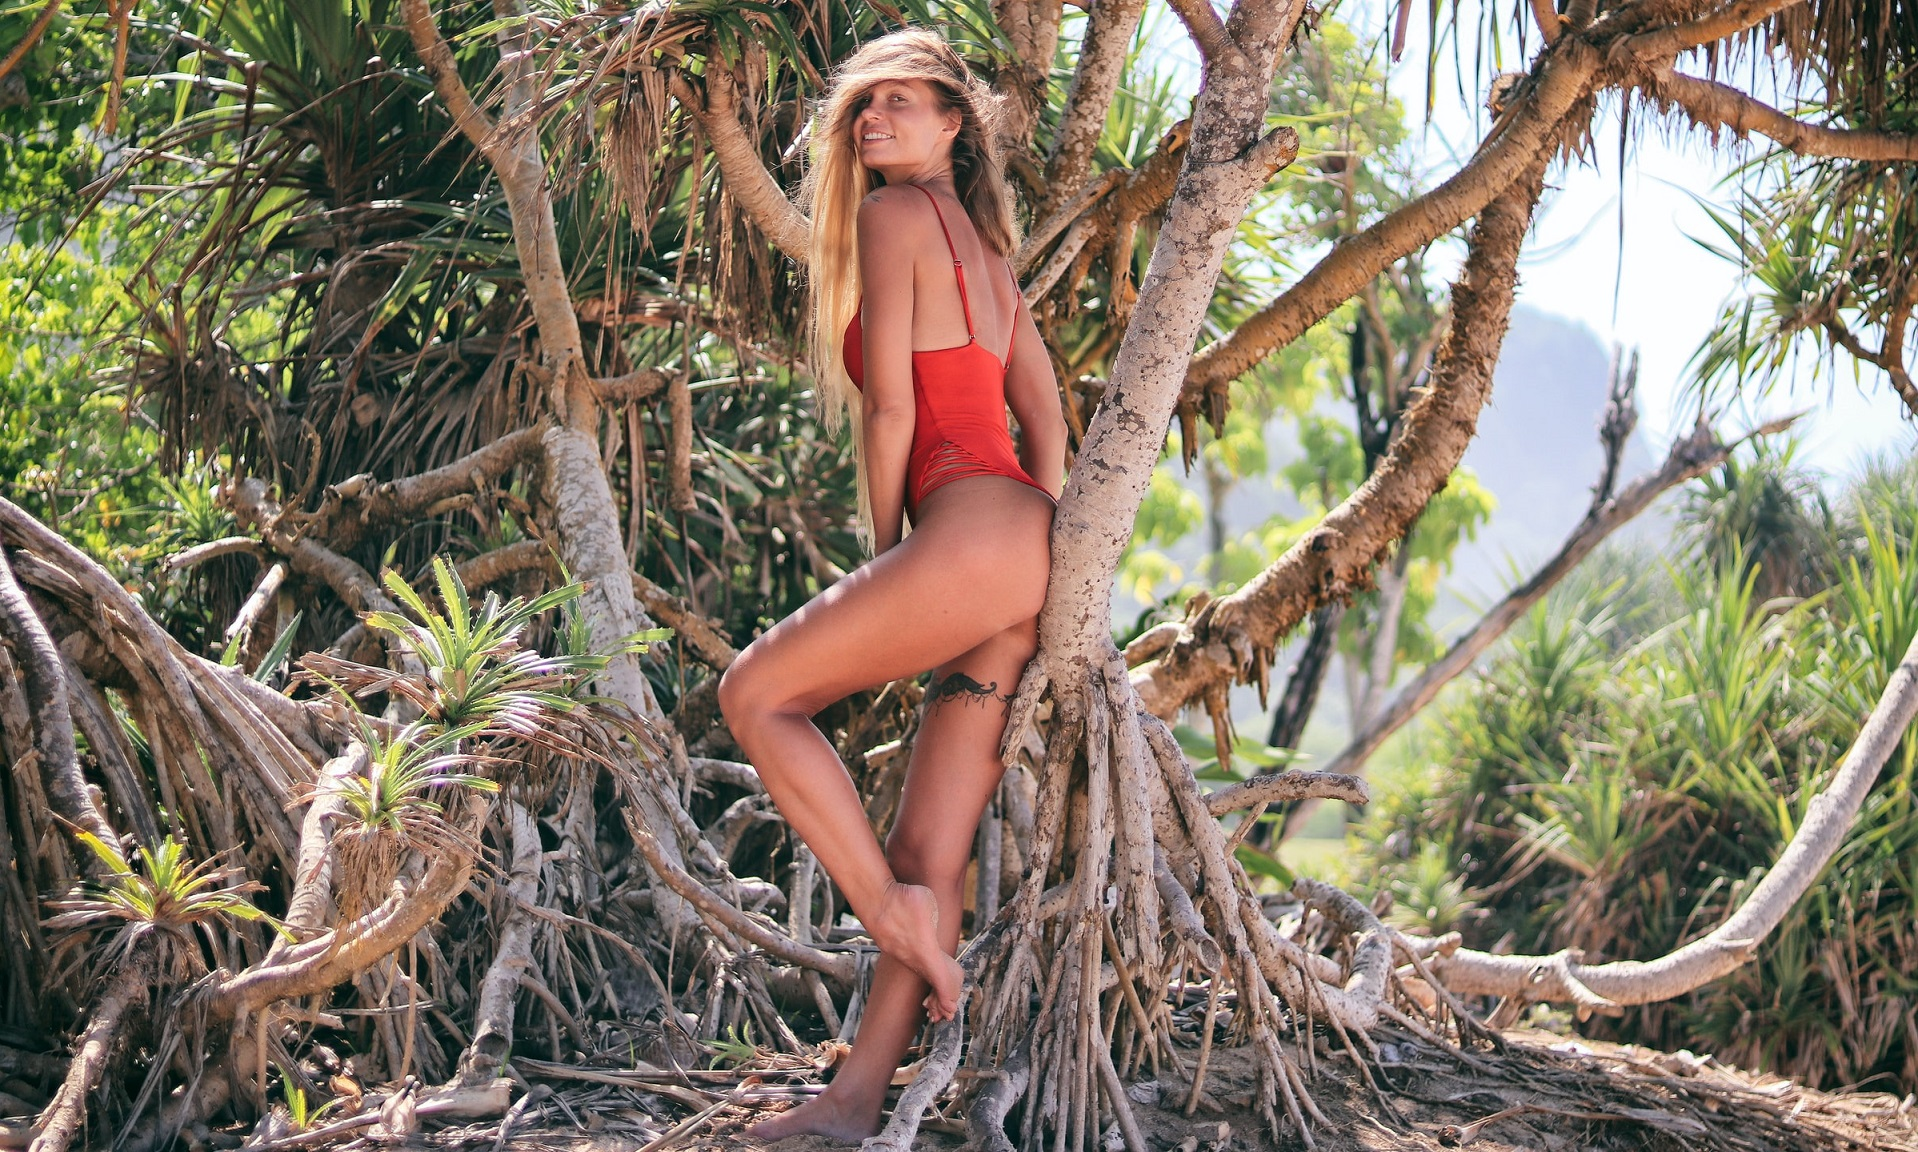 The Very Best Swimsuits, According to Fashion Designers